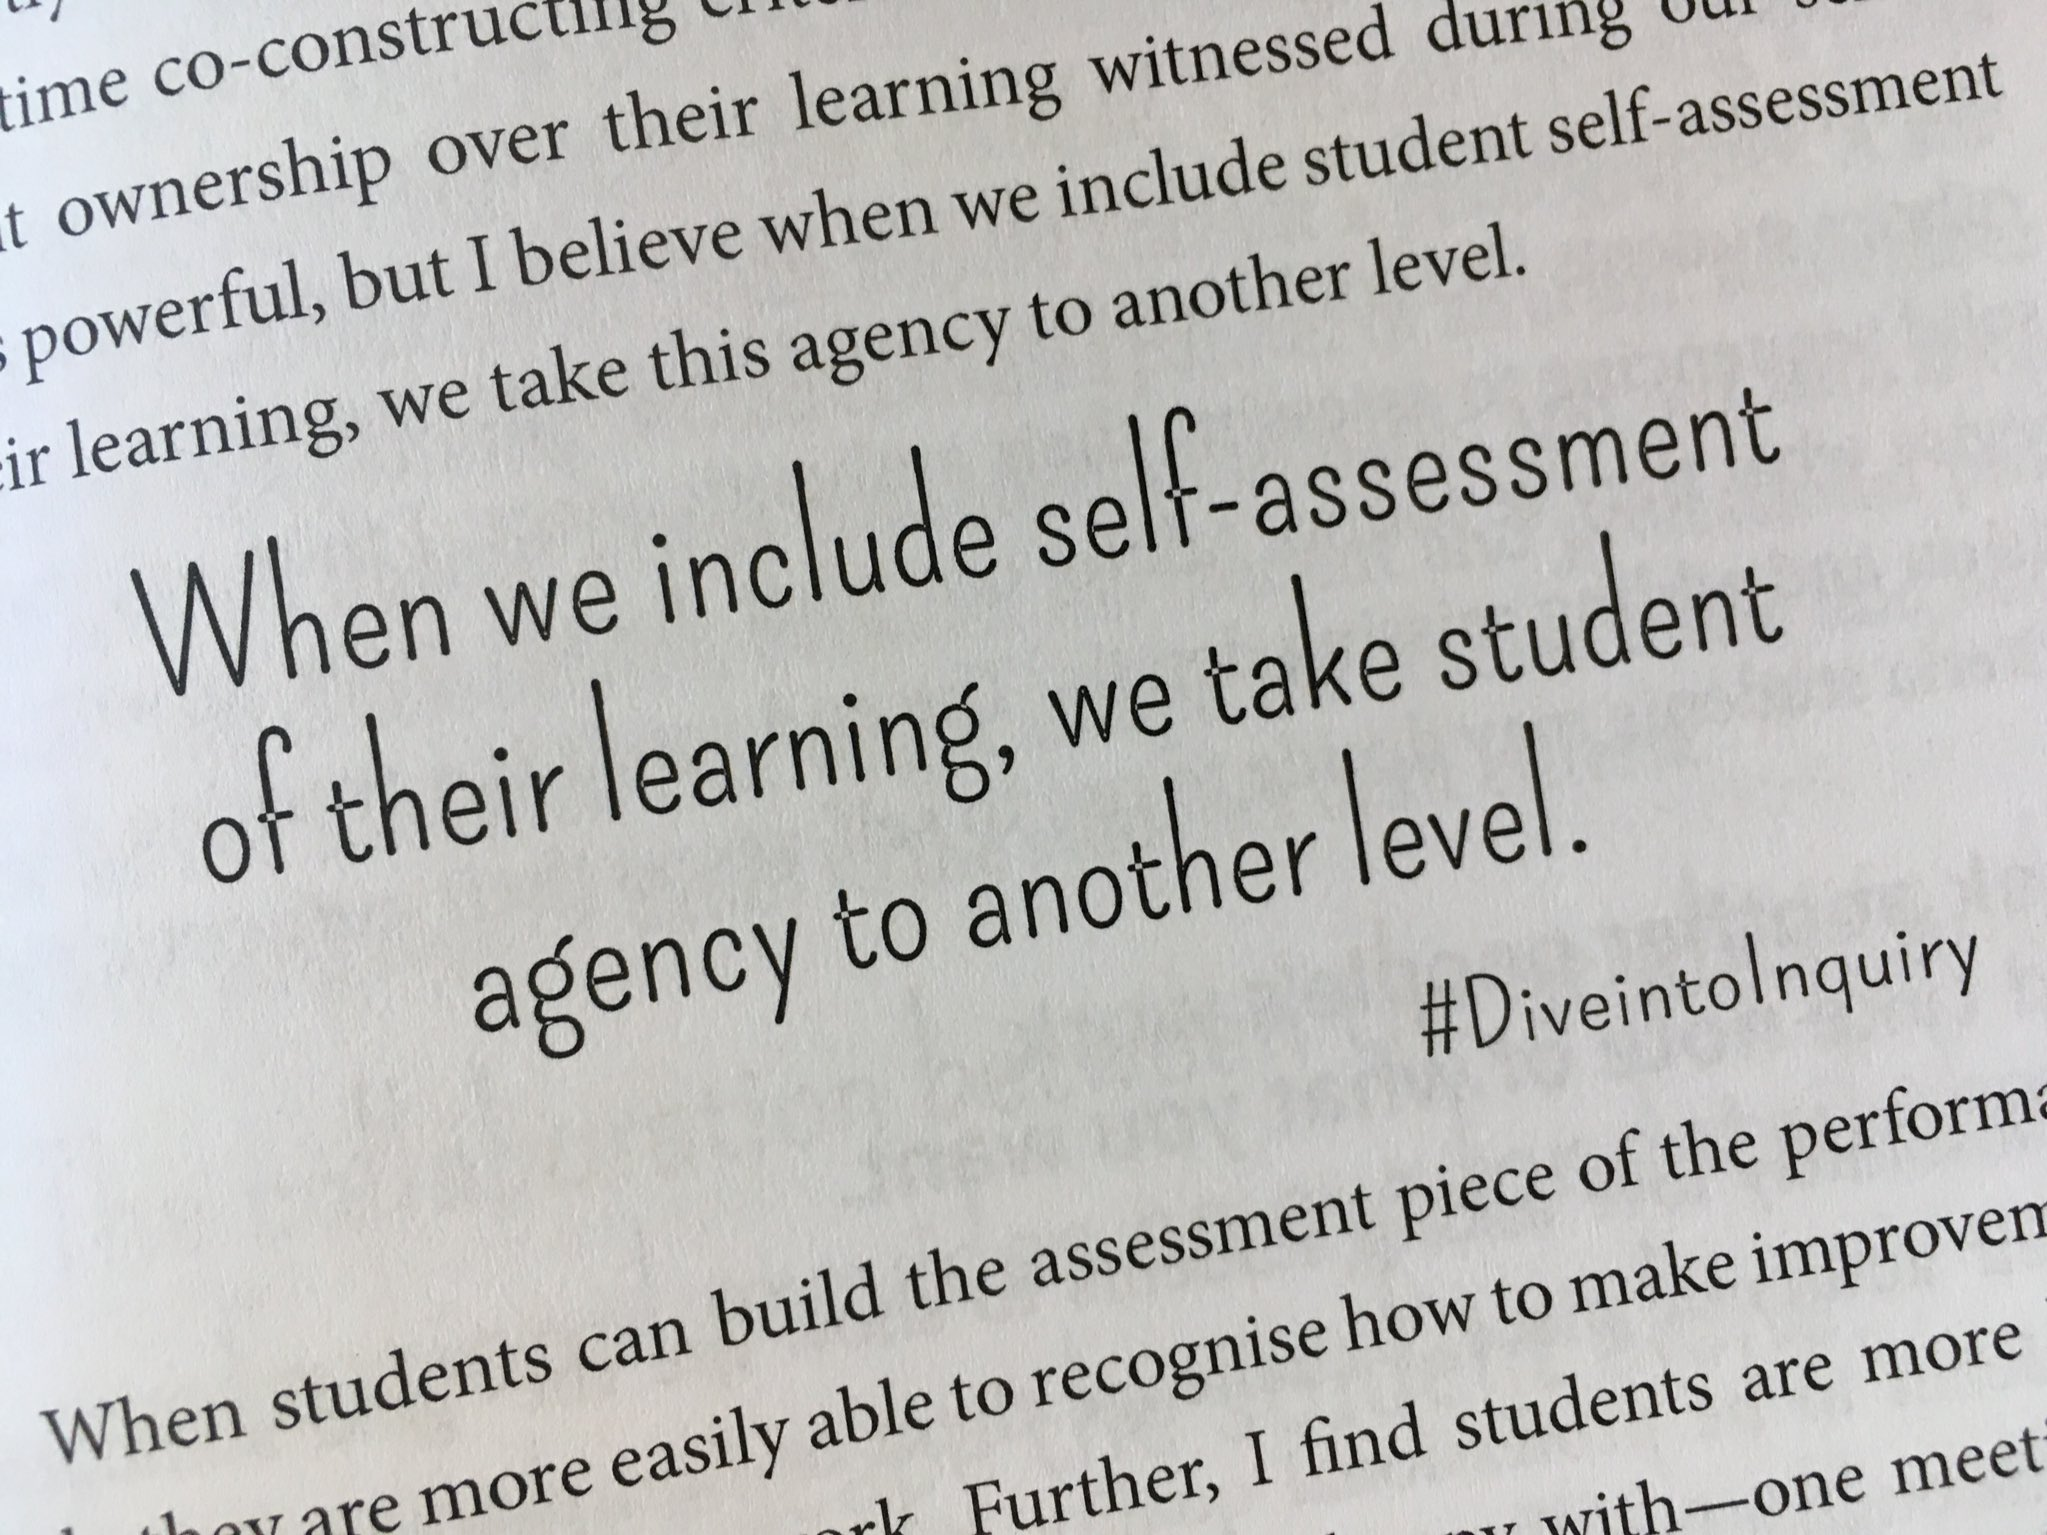 """Melissa Armstrong On Twitter: """"self-Assessment & Feedback As Key To  Fostering Student Agency. Wondering About Role Of Metacognition In Inquiry  & How This"""